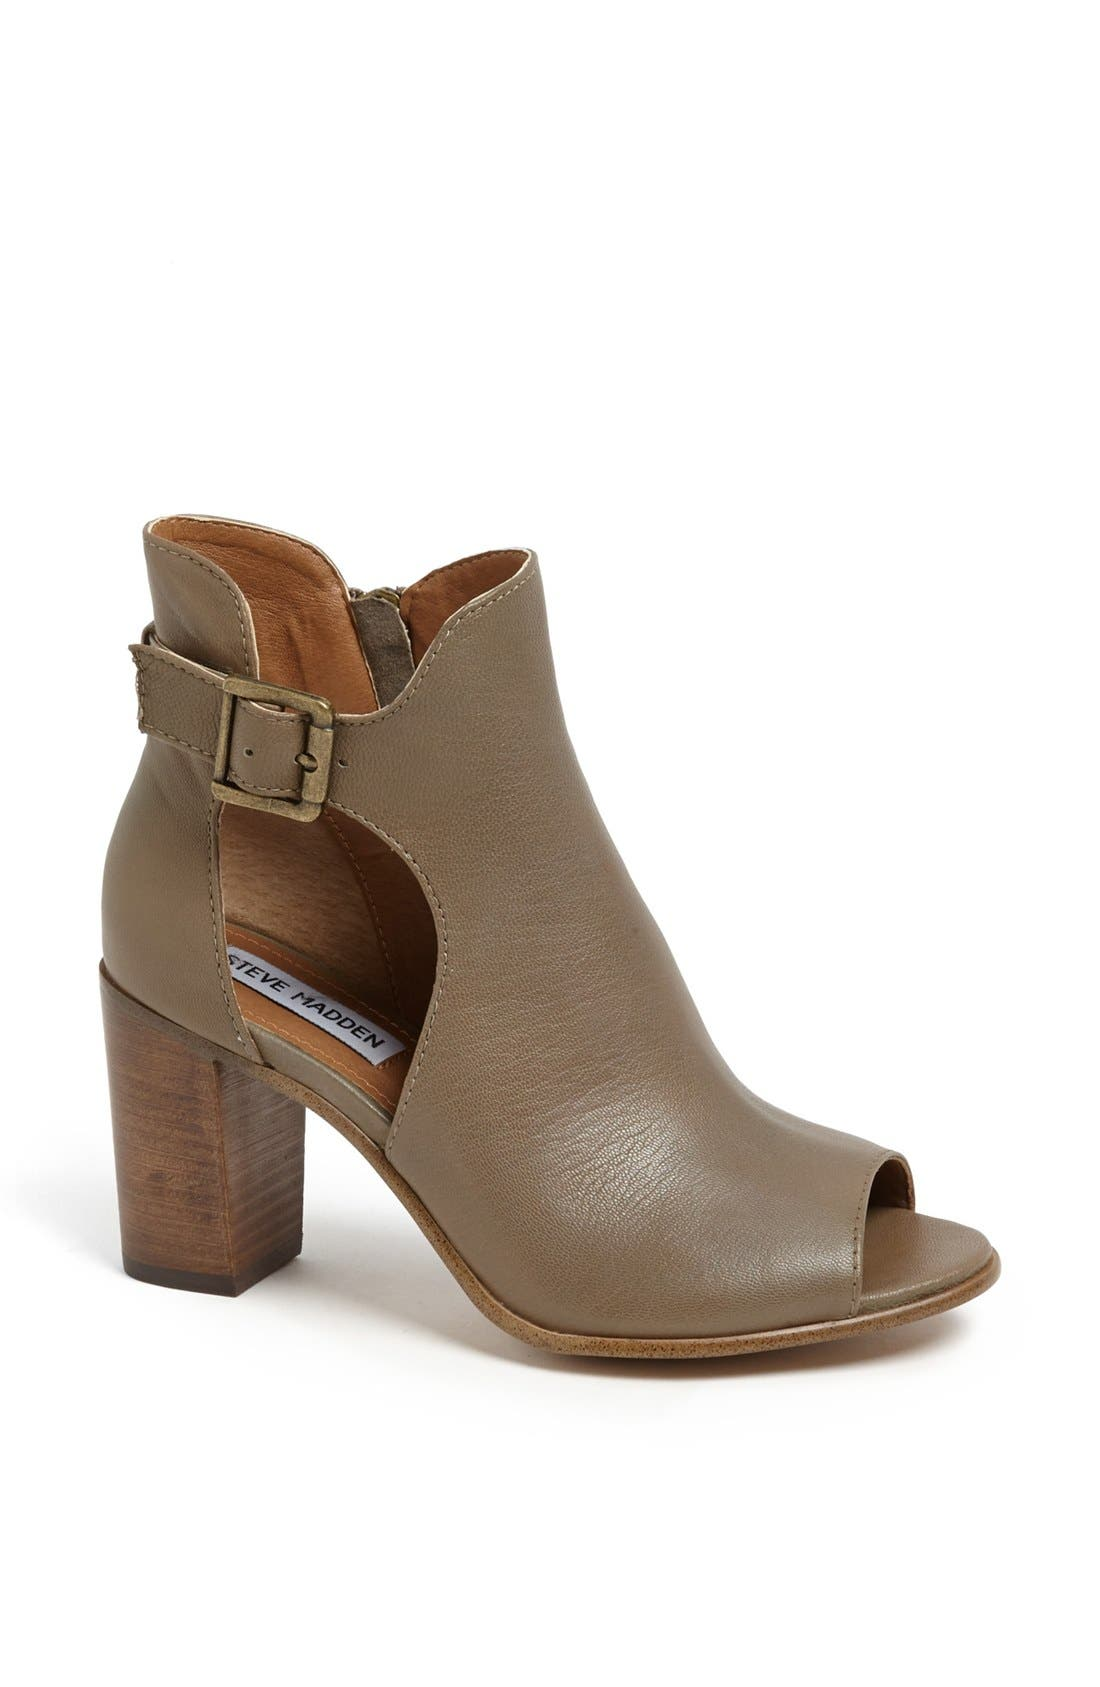 Alternate Image 1 Selected - Steve Madden 'Nextstar' Peep Toe Bootie